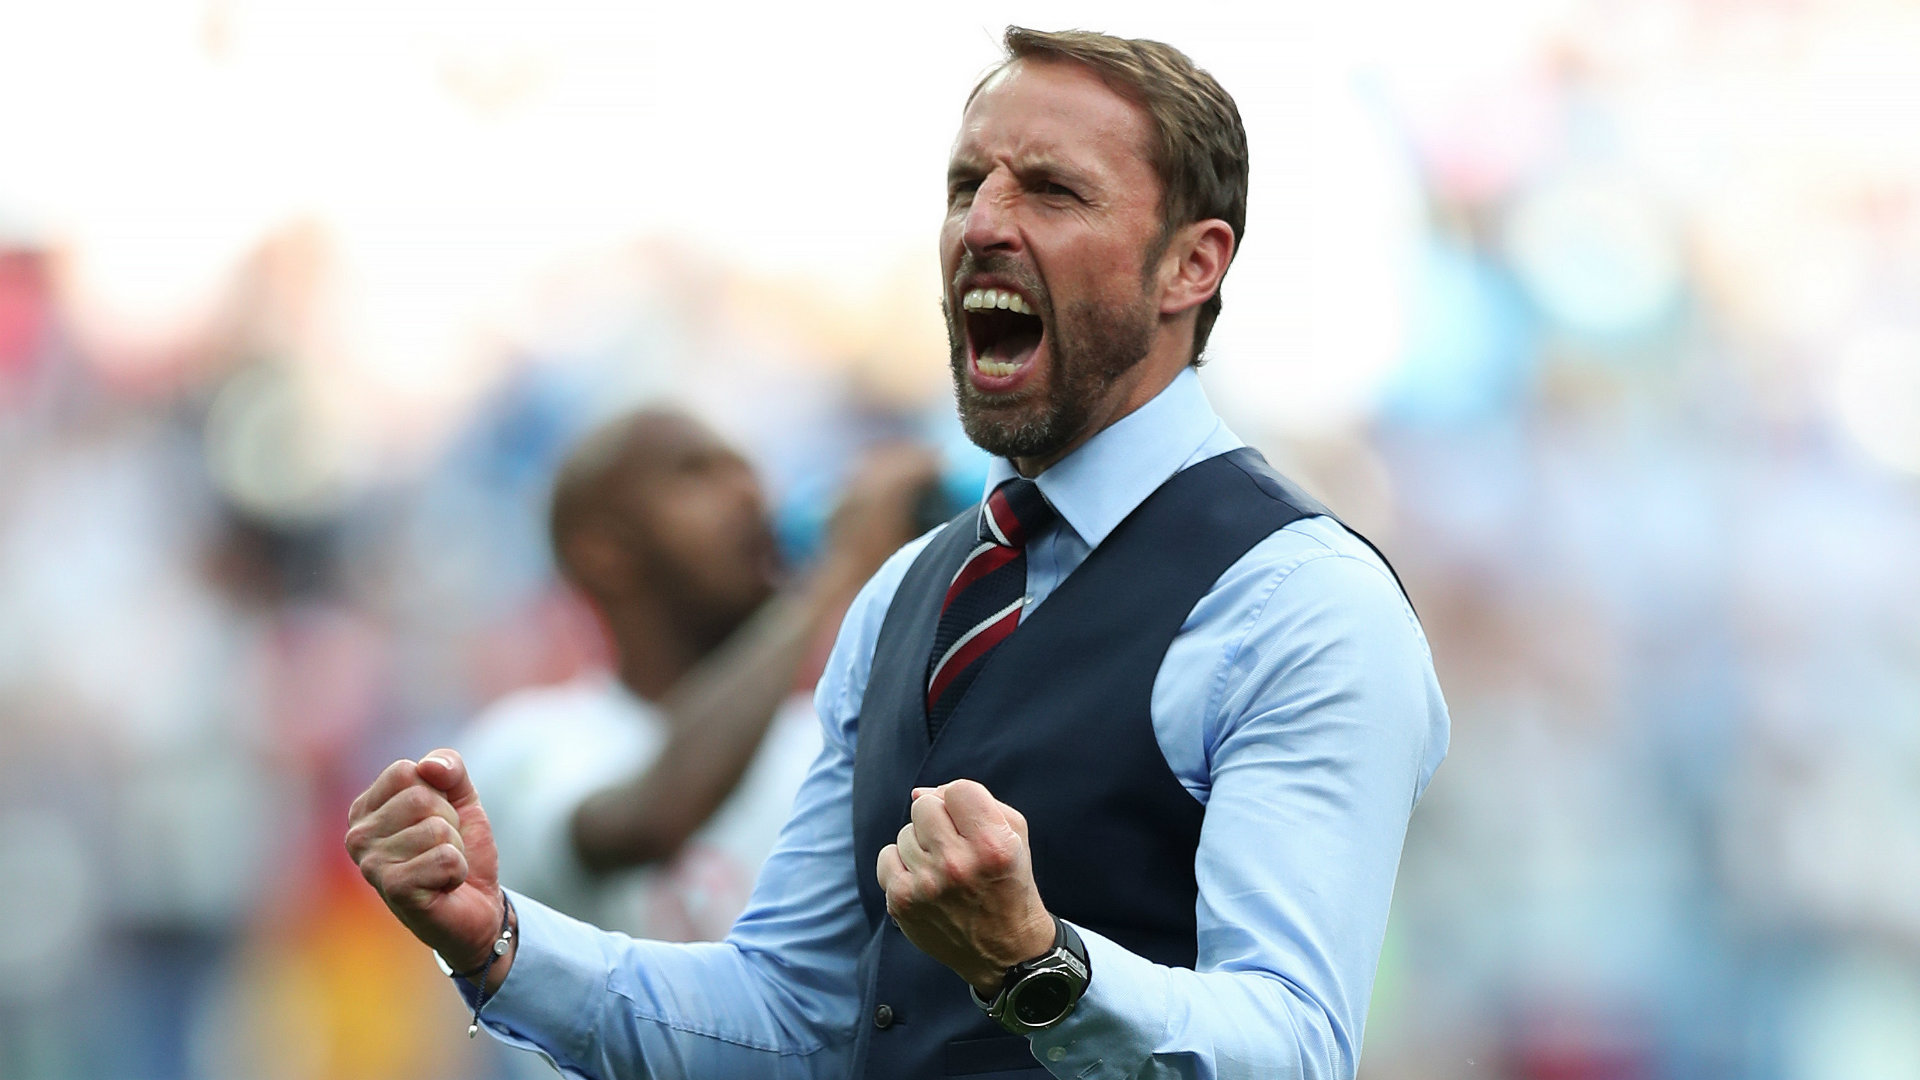 Wimbledon will not show England World Cup match against Colombia